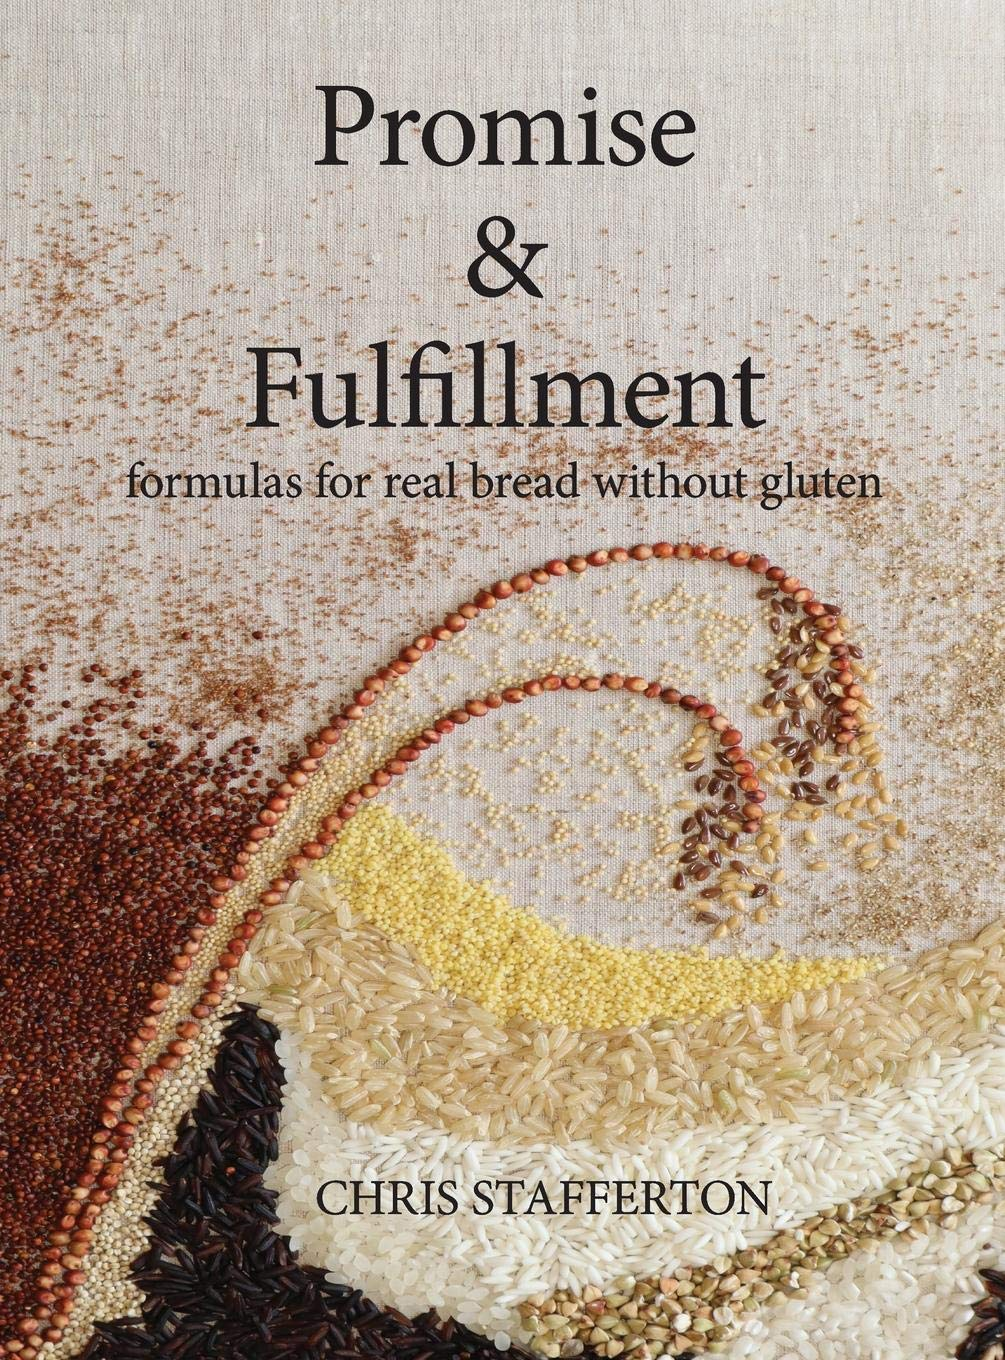 Promise & Fulfillment: formulas for real bread without gluten by Miliaceum